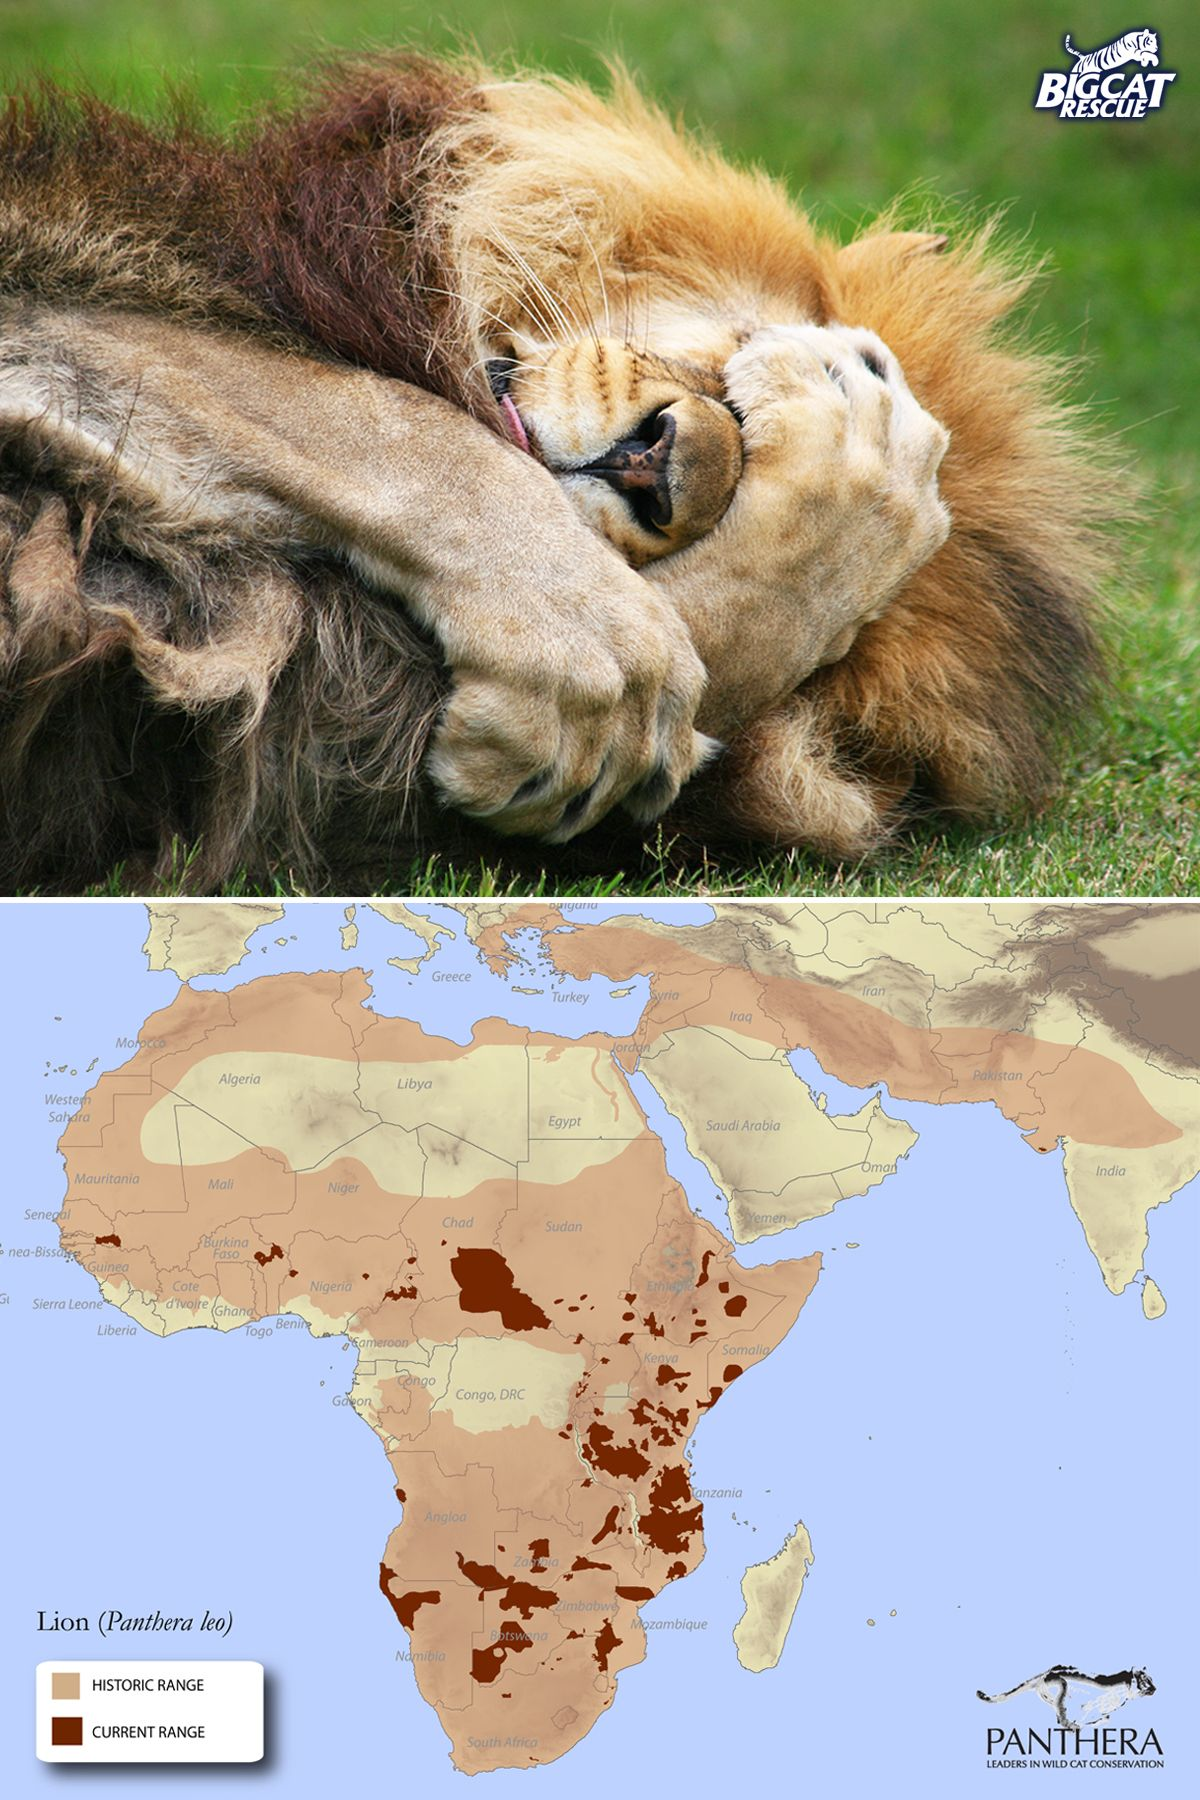 Pin by Big Cat Rescue on Wild animals Big cat rescue